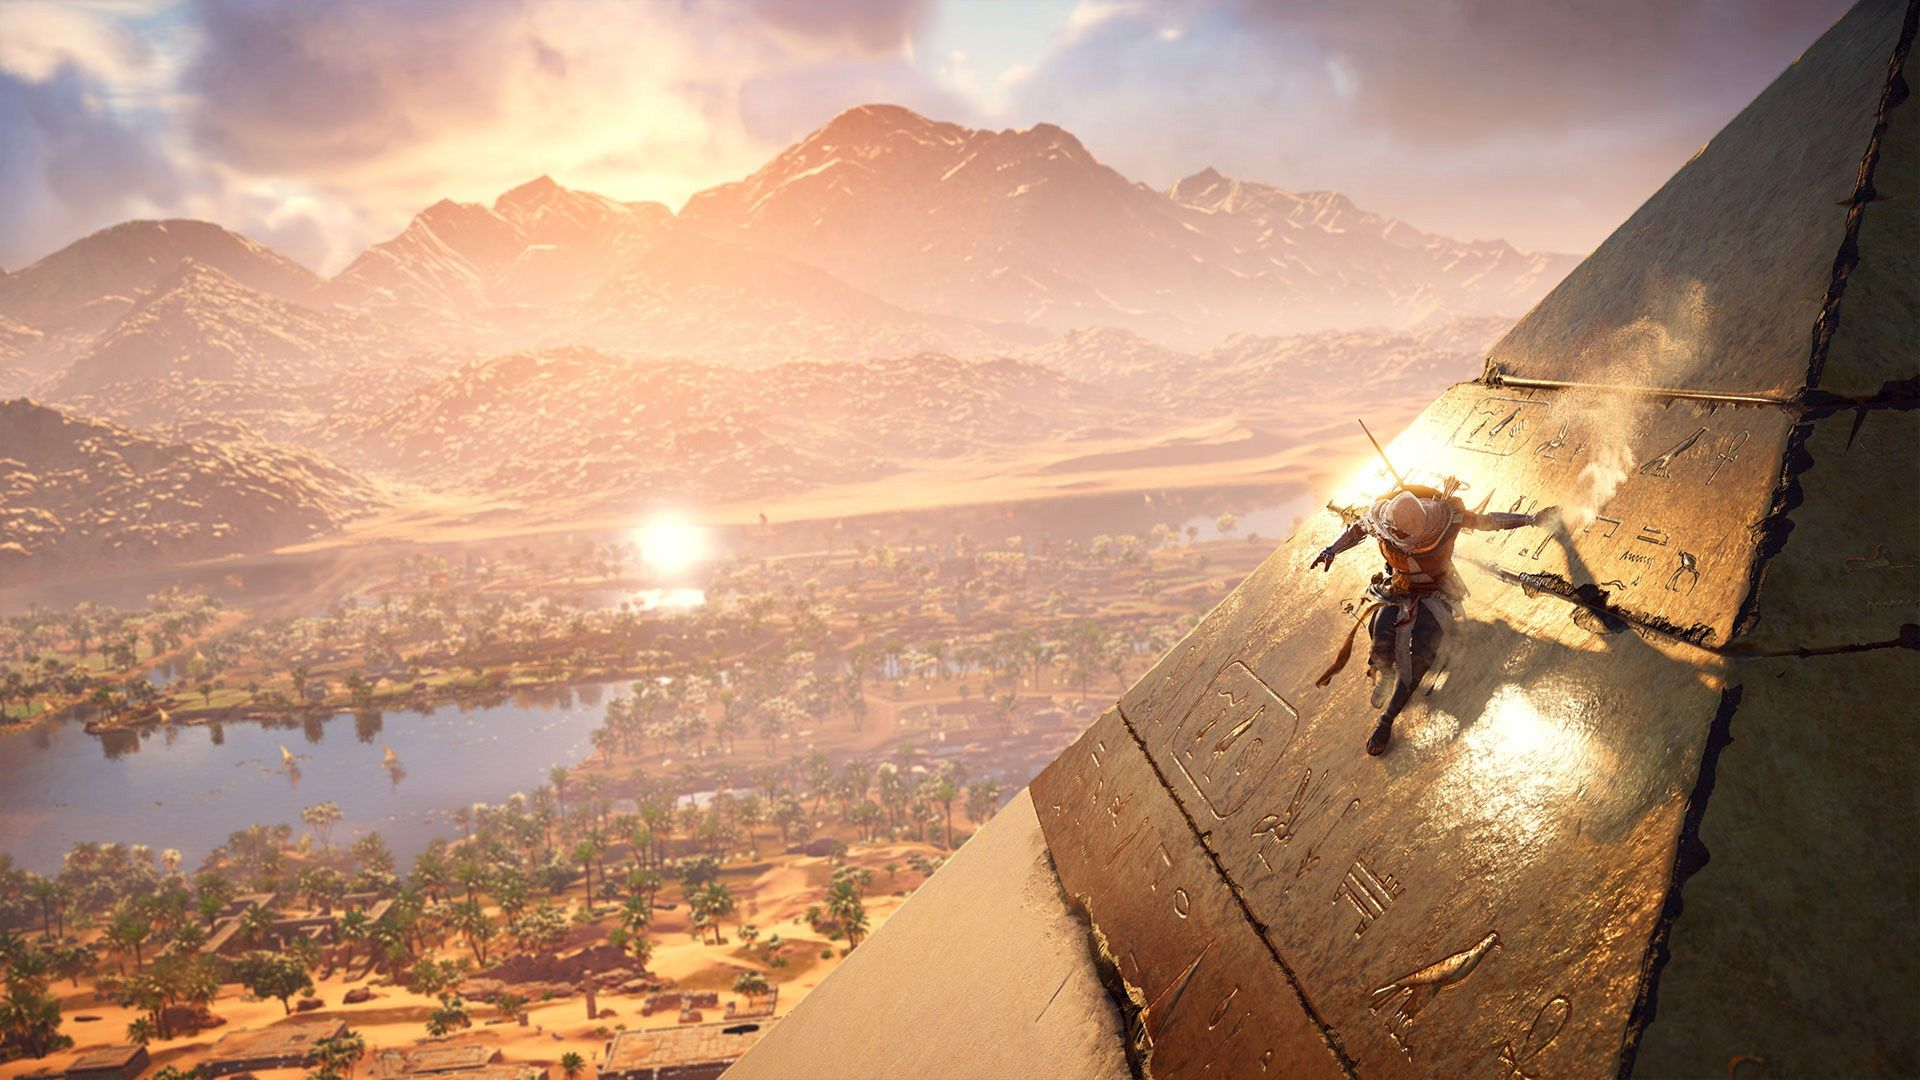 Assassin S Creed Origins Wallpapers Top Free Assassin S Creed Origins Backgrounds Wallpaperaccess